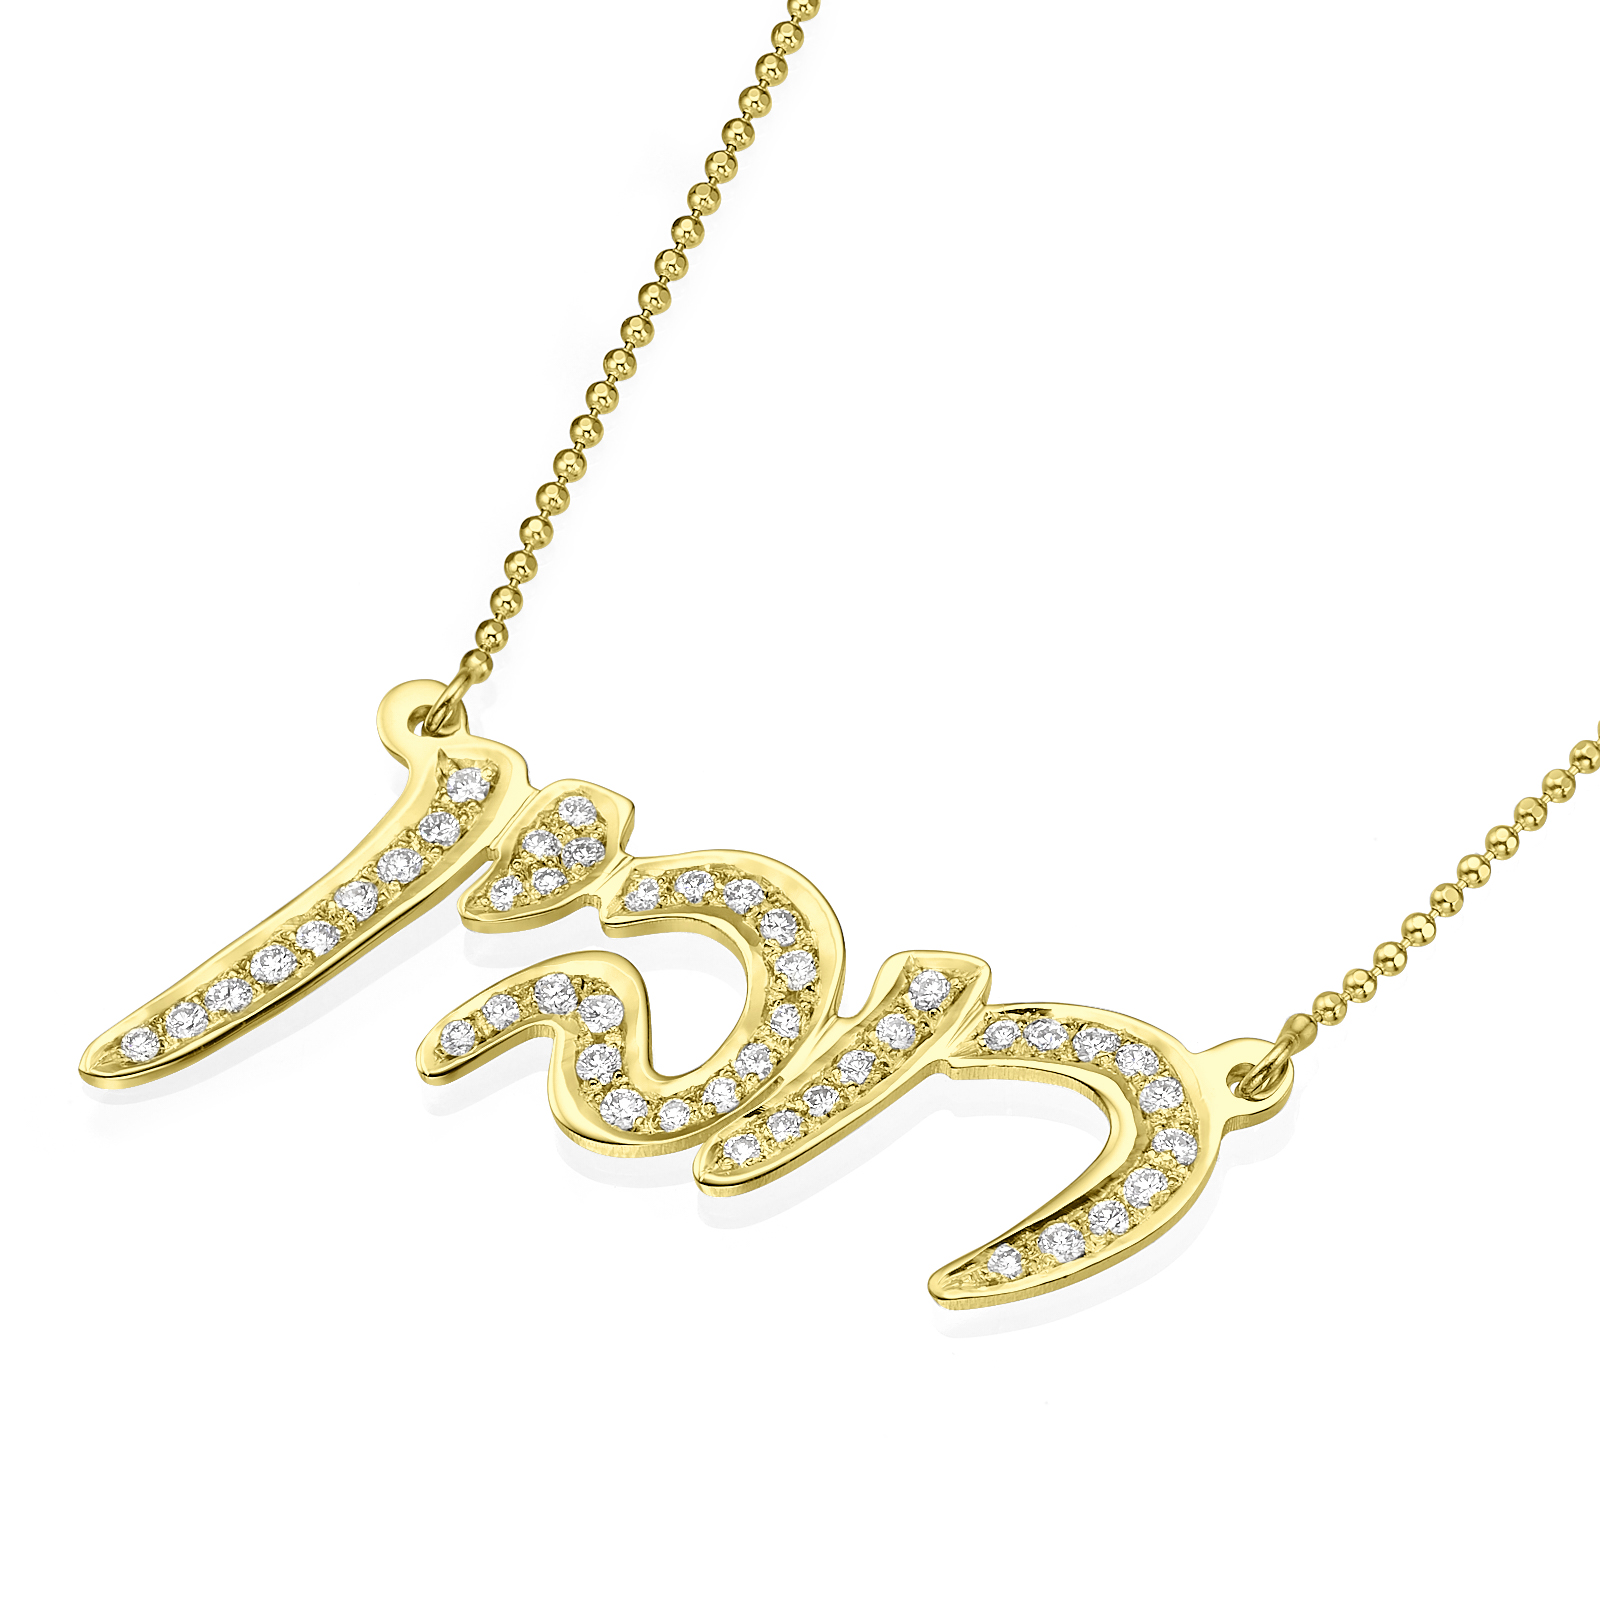 Hebrew Script Diamond Name Necklace - Yellow Gold - Baltinester Jewelry